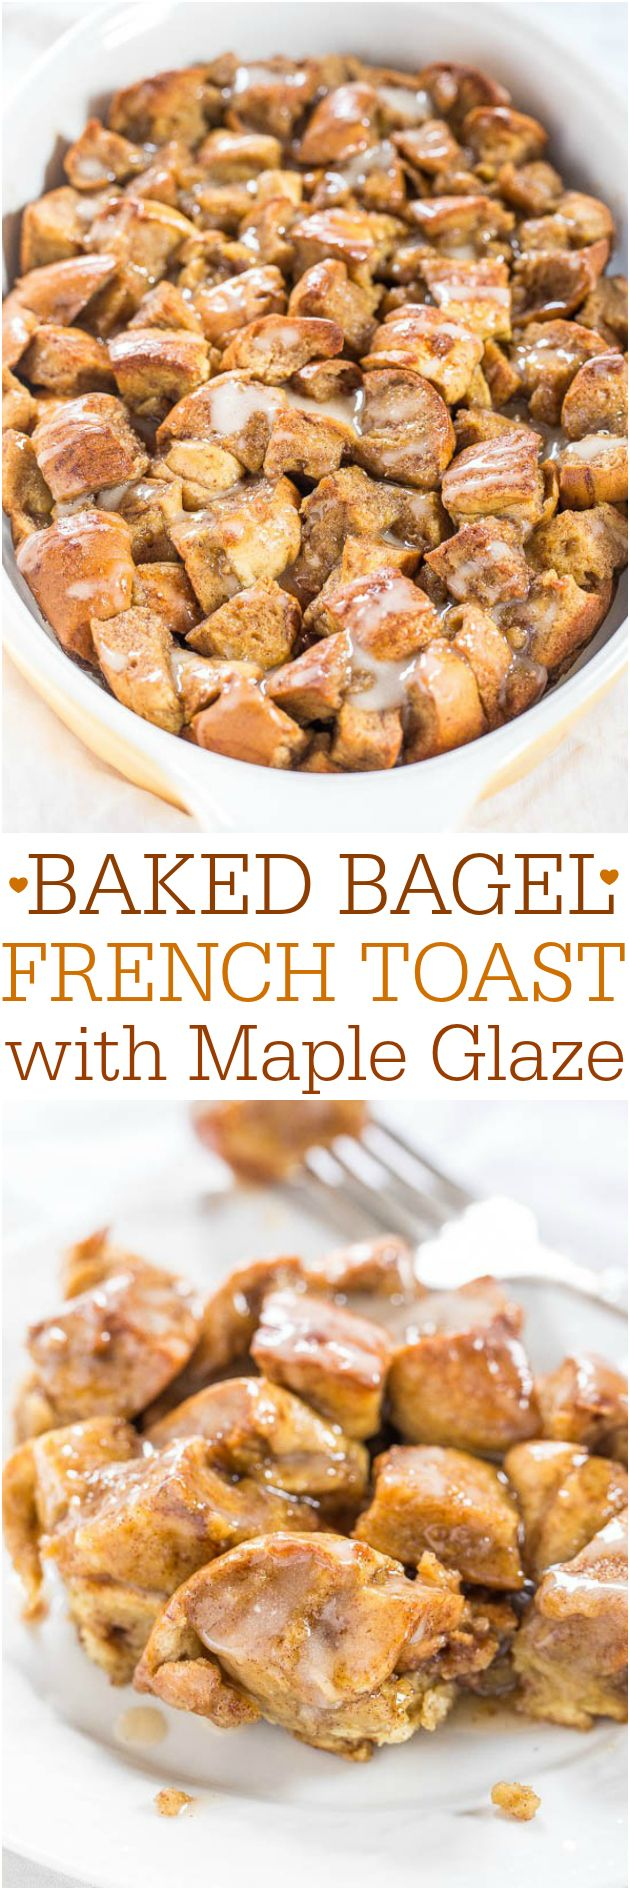 Baked Bagel French Toast With Maple Glaze